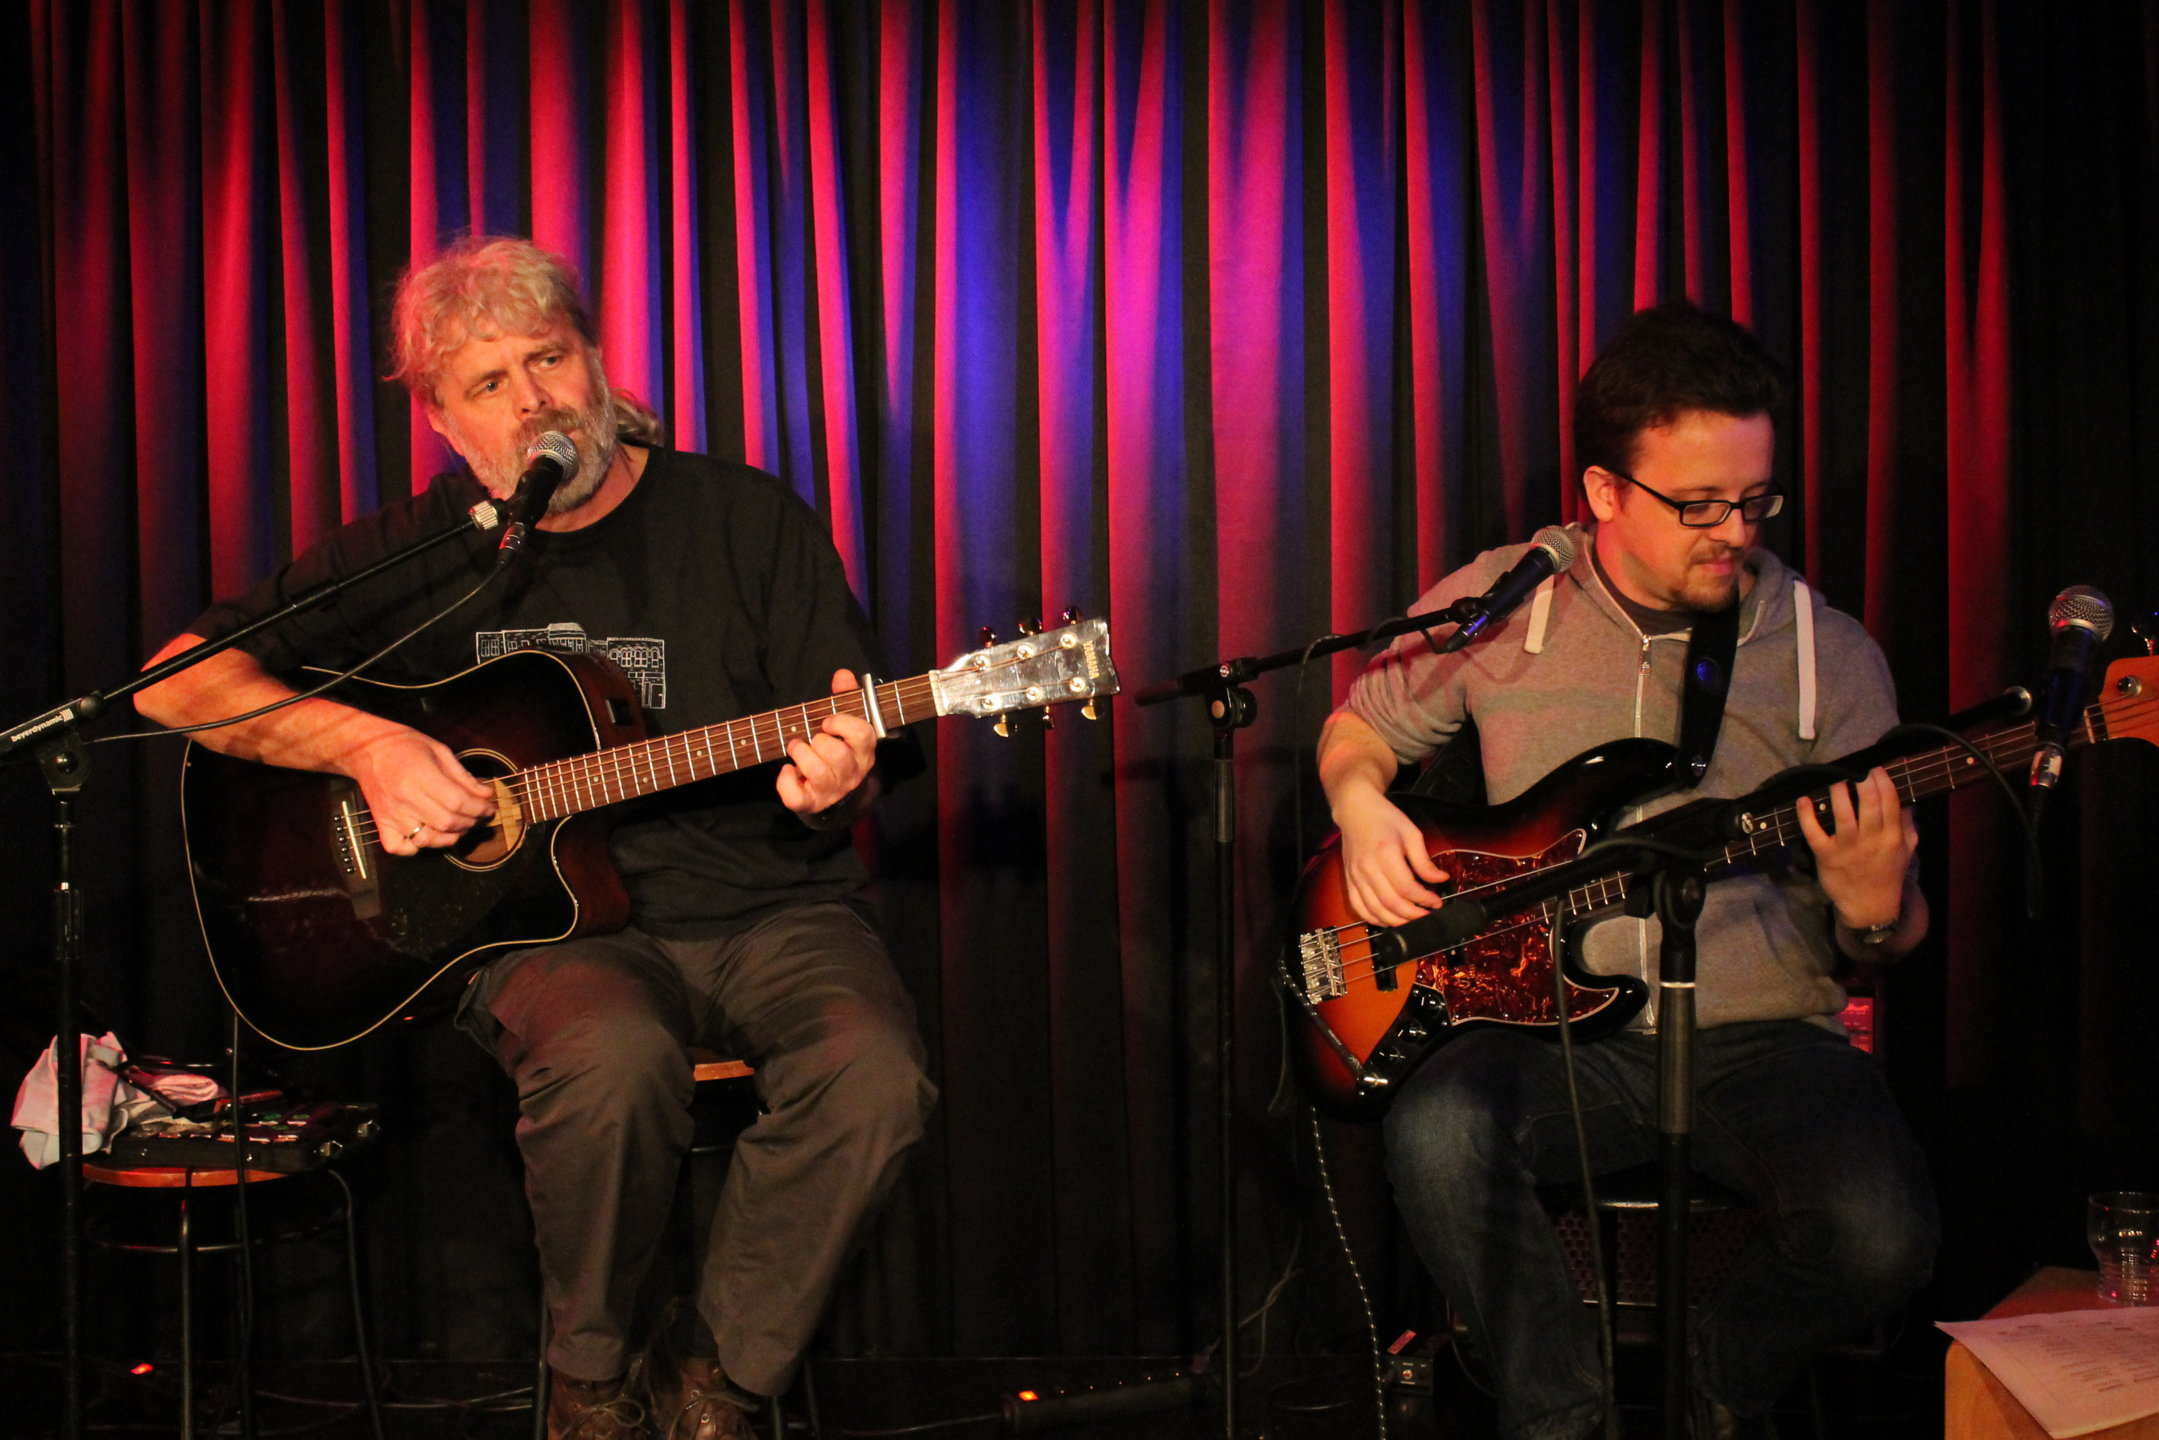 Shiregreen_Klaus & Paul Adamaschek